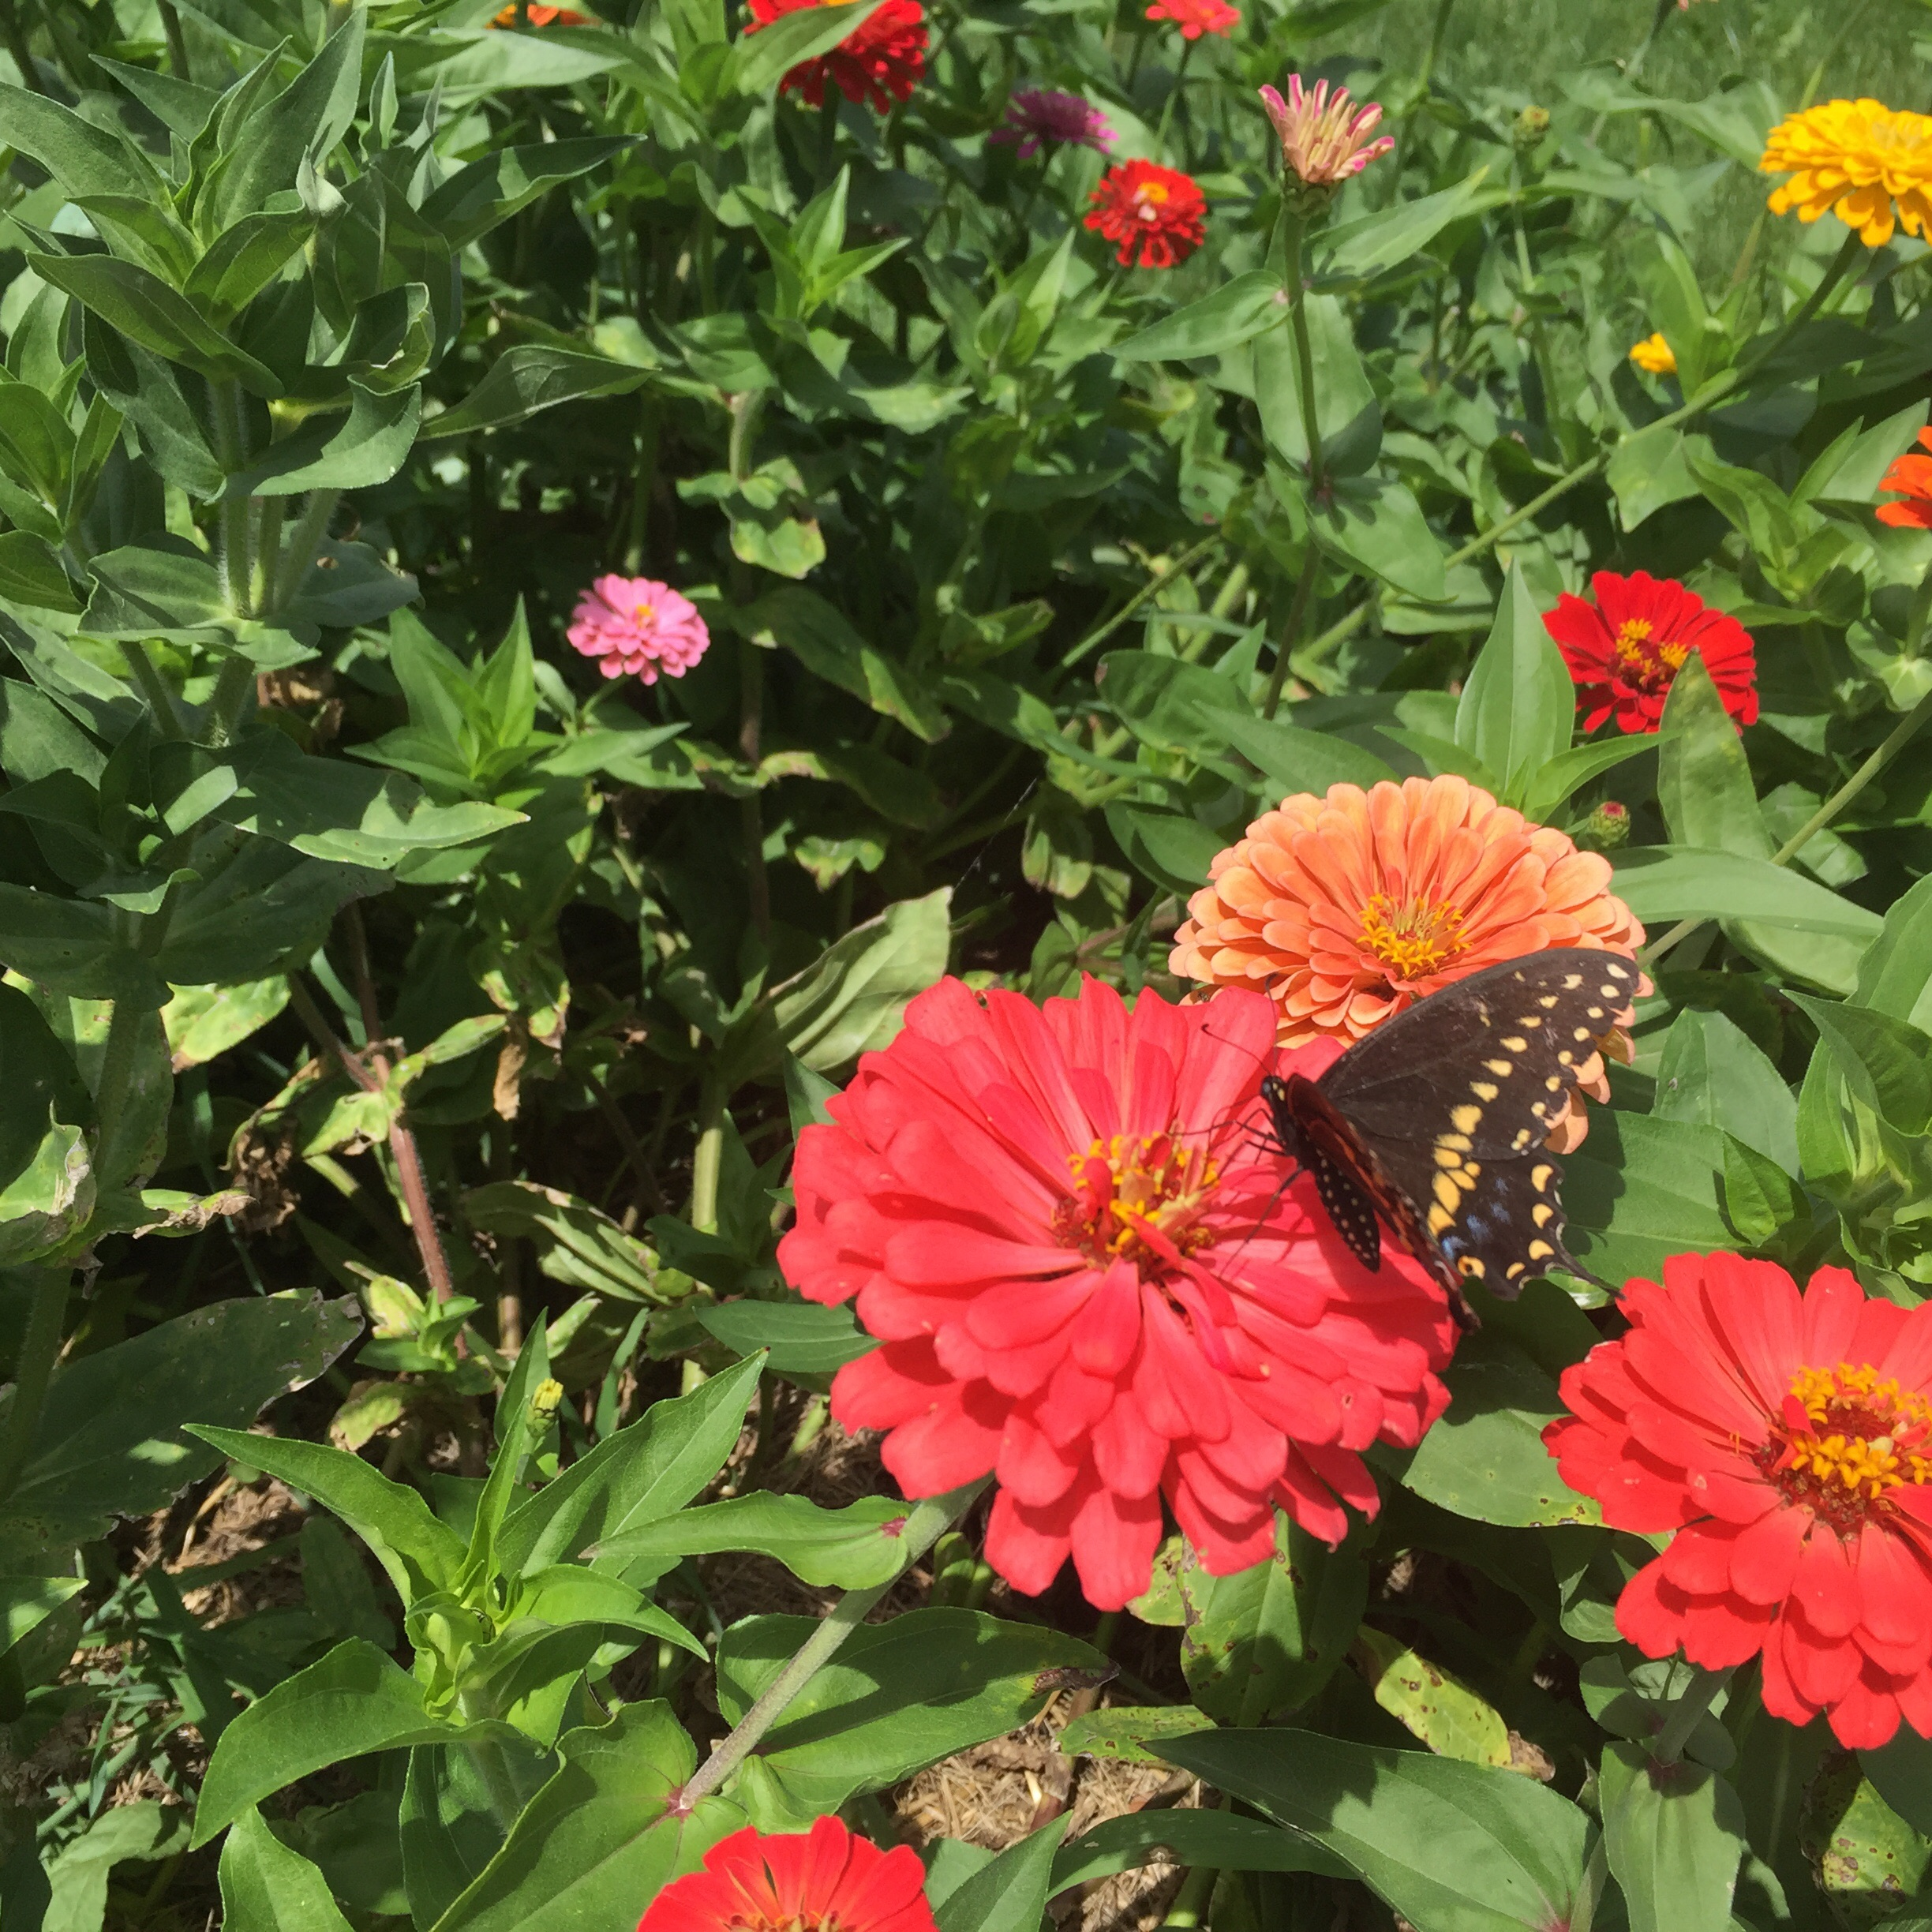 Flowers help attract pollinators to the garden and also add a lot of color.